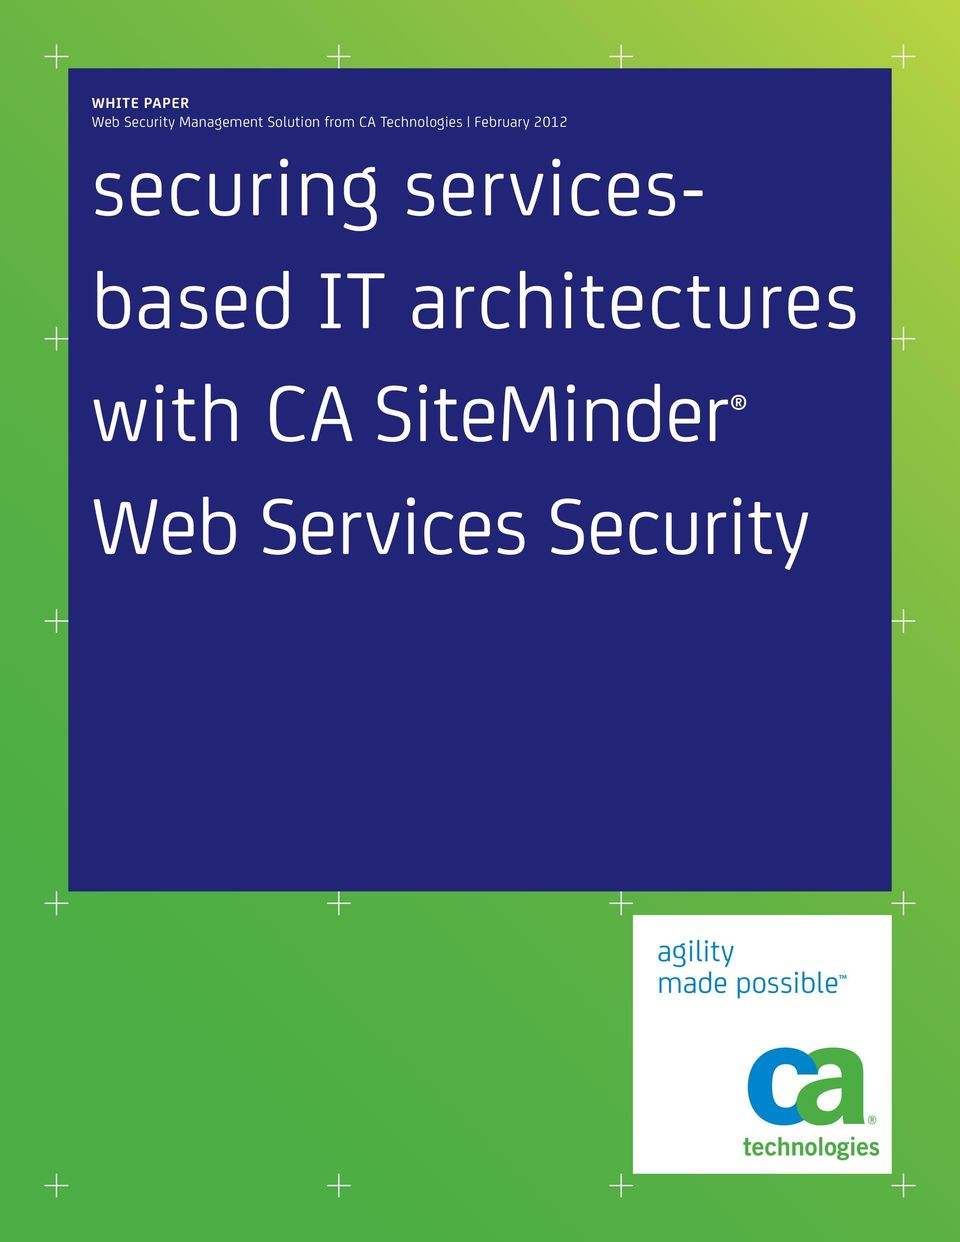 servicesbased IT architectures with CA